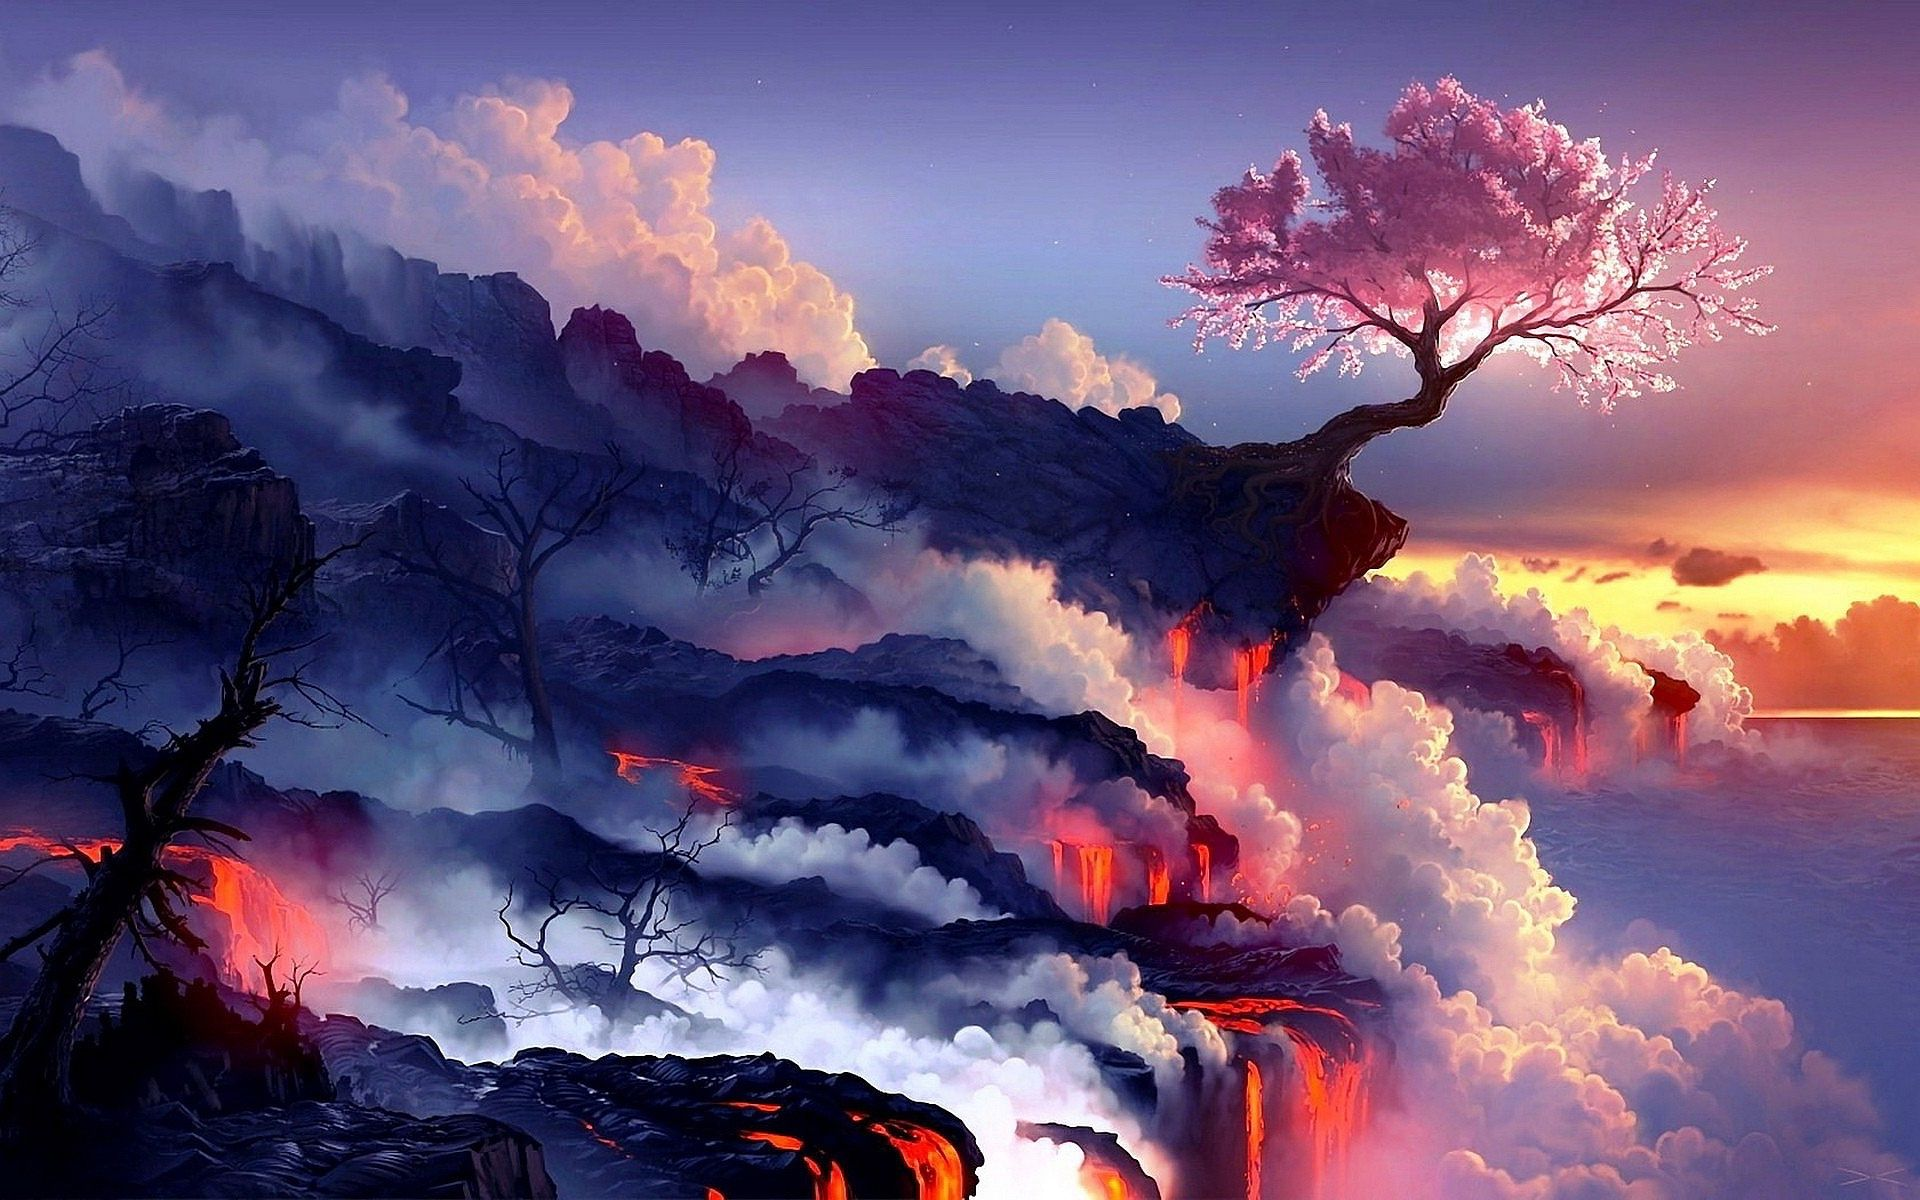 Desktop Wallpapers 4k Ultra Hd Landscape Wallpaper Fantasy Landscape Volcano Wallpaper